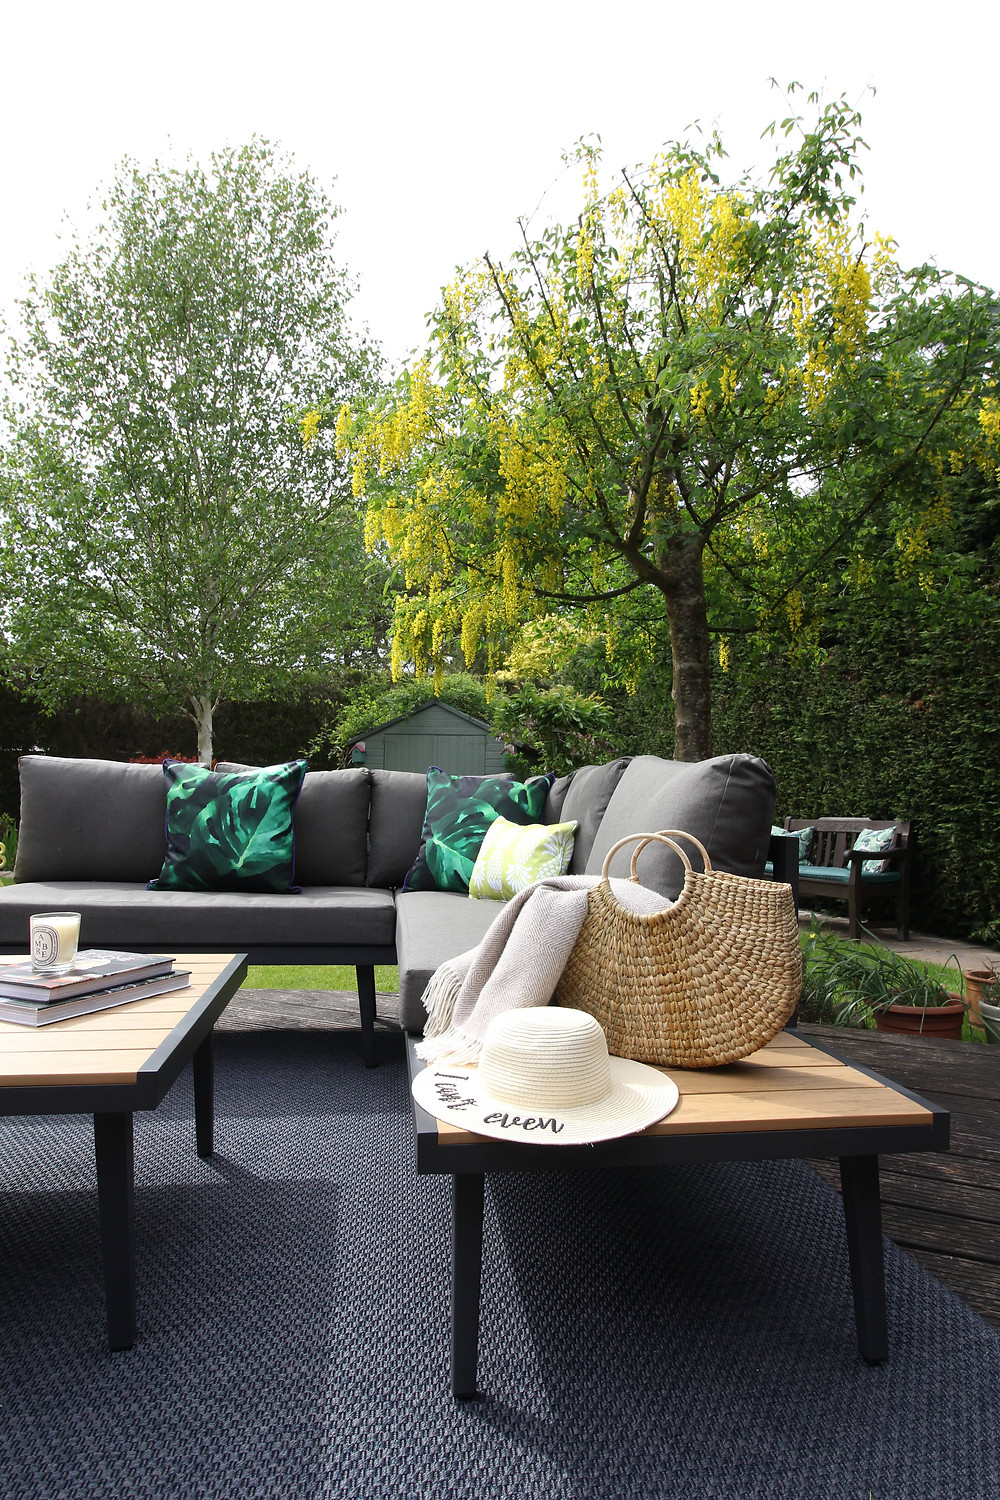 Danetti palermo garden bench and coffee table, Penelope Hope outdoors cushions